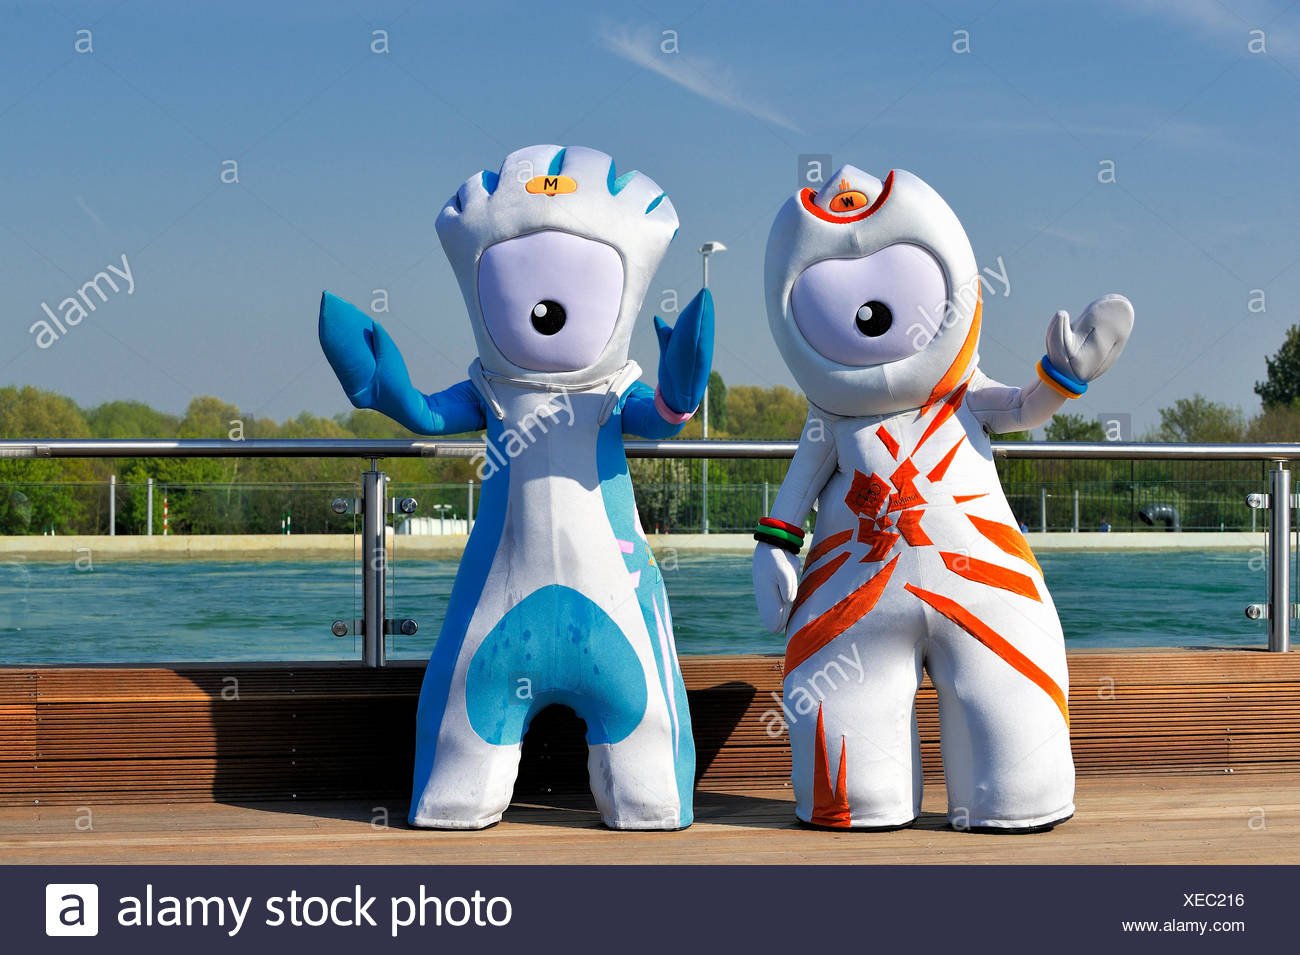 Official Mascots Stock Photos & Official Mascots Stock Images - Alamy